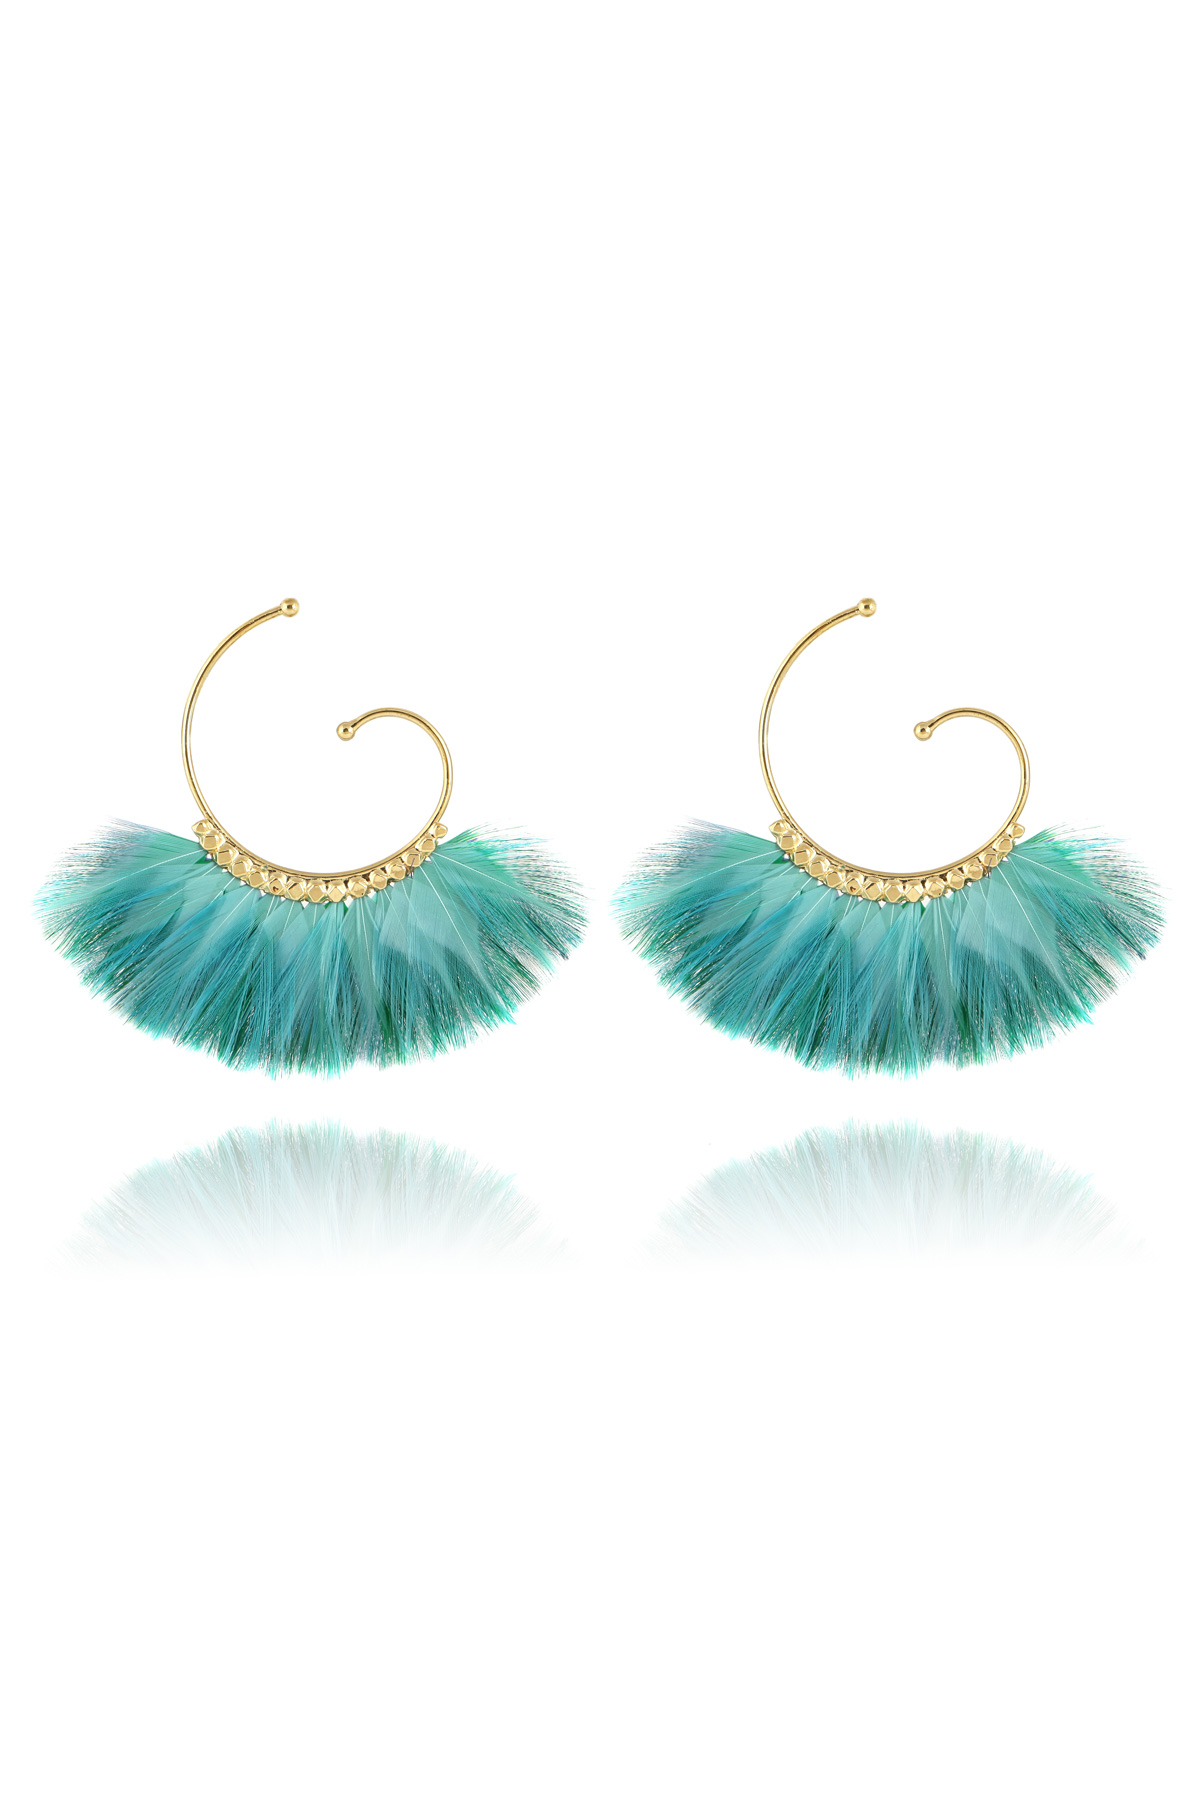 Buzios Feather Earrings - Turquoise 3